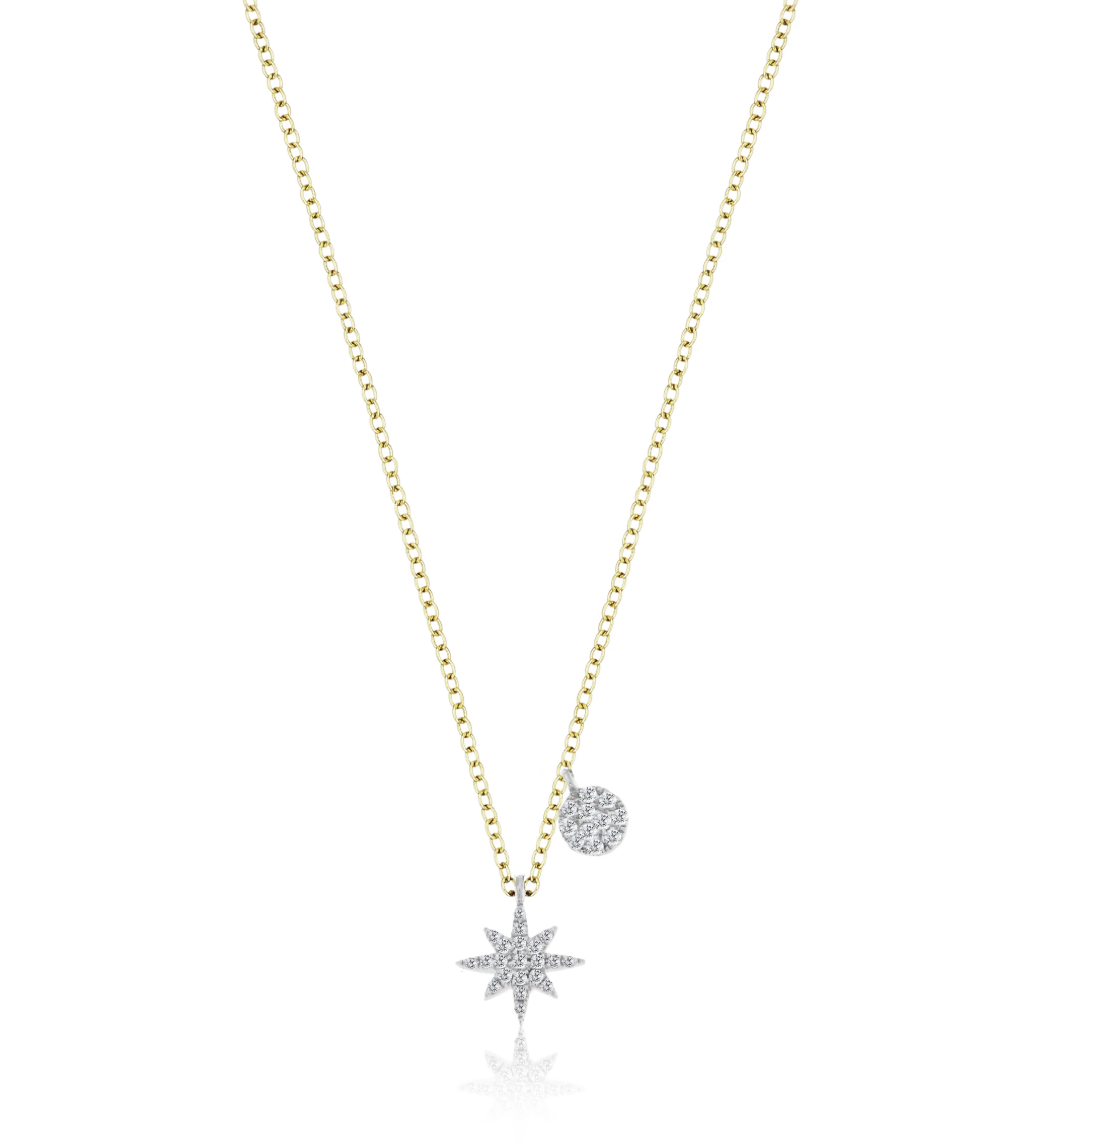 Meira T N11967 Starburst Diamond Necklace